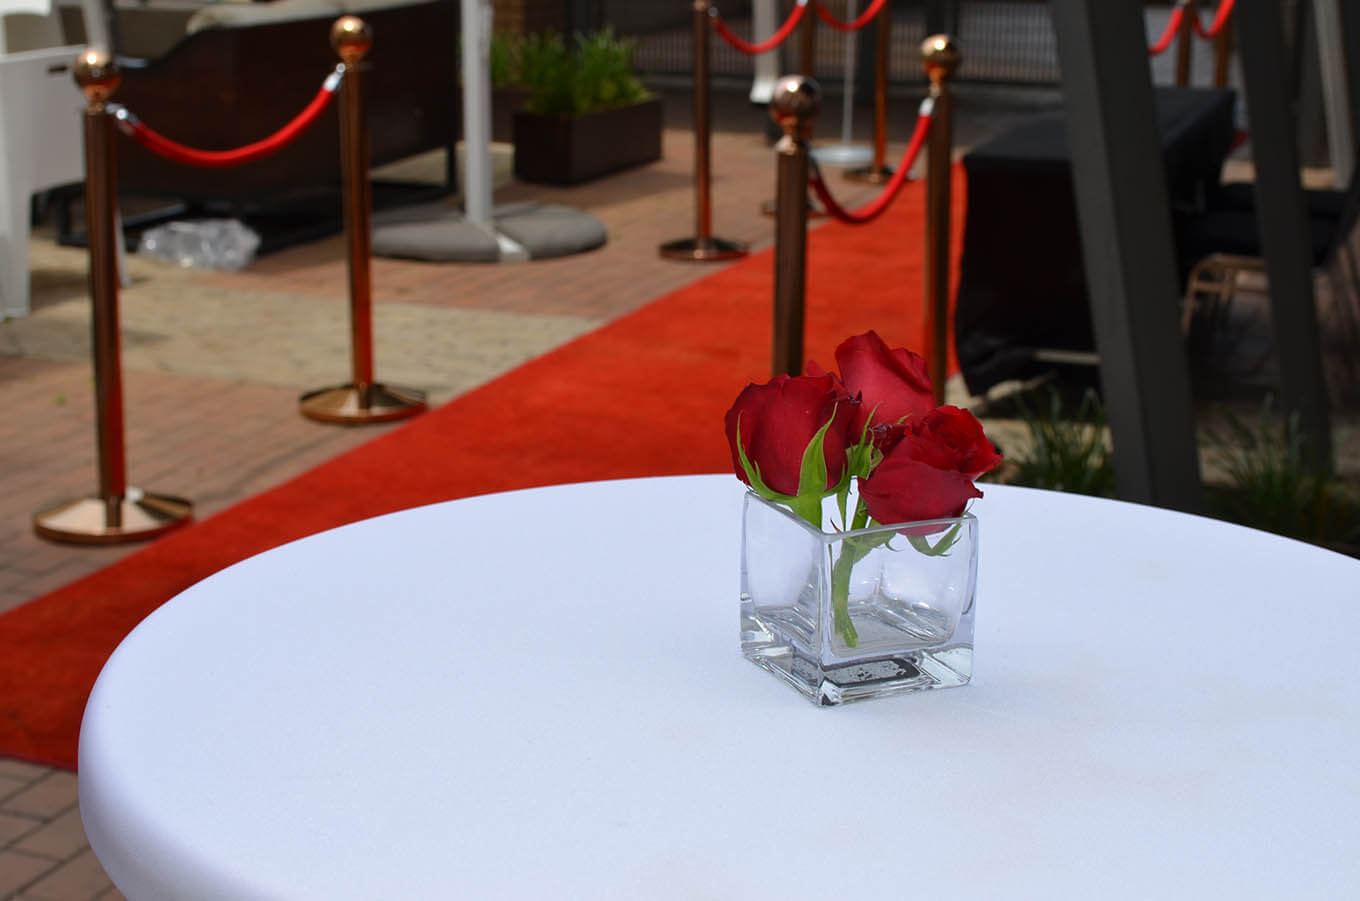 Focus Rooms Events Venue on the red carpet